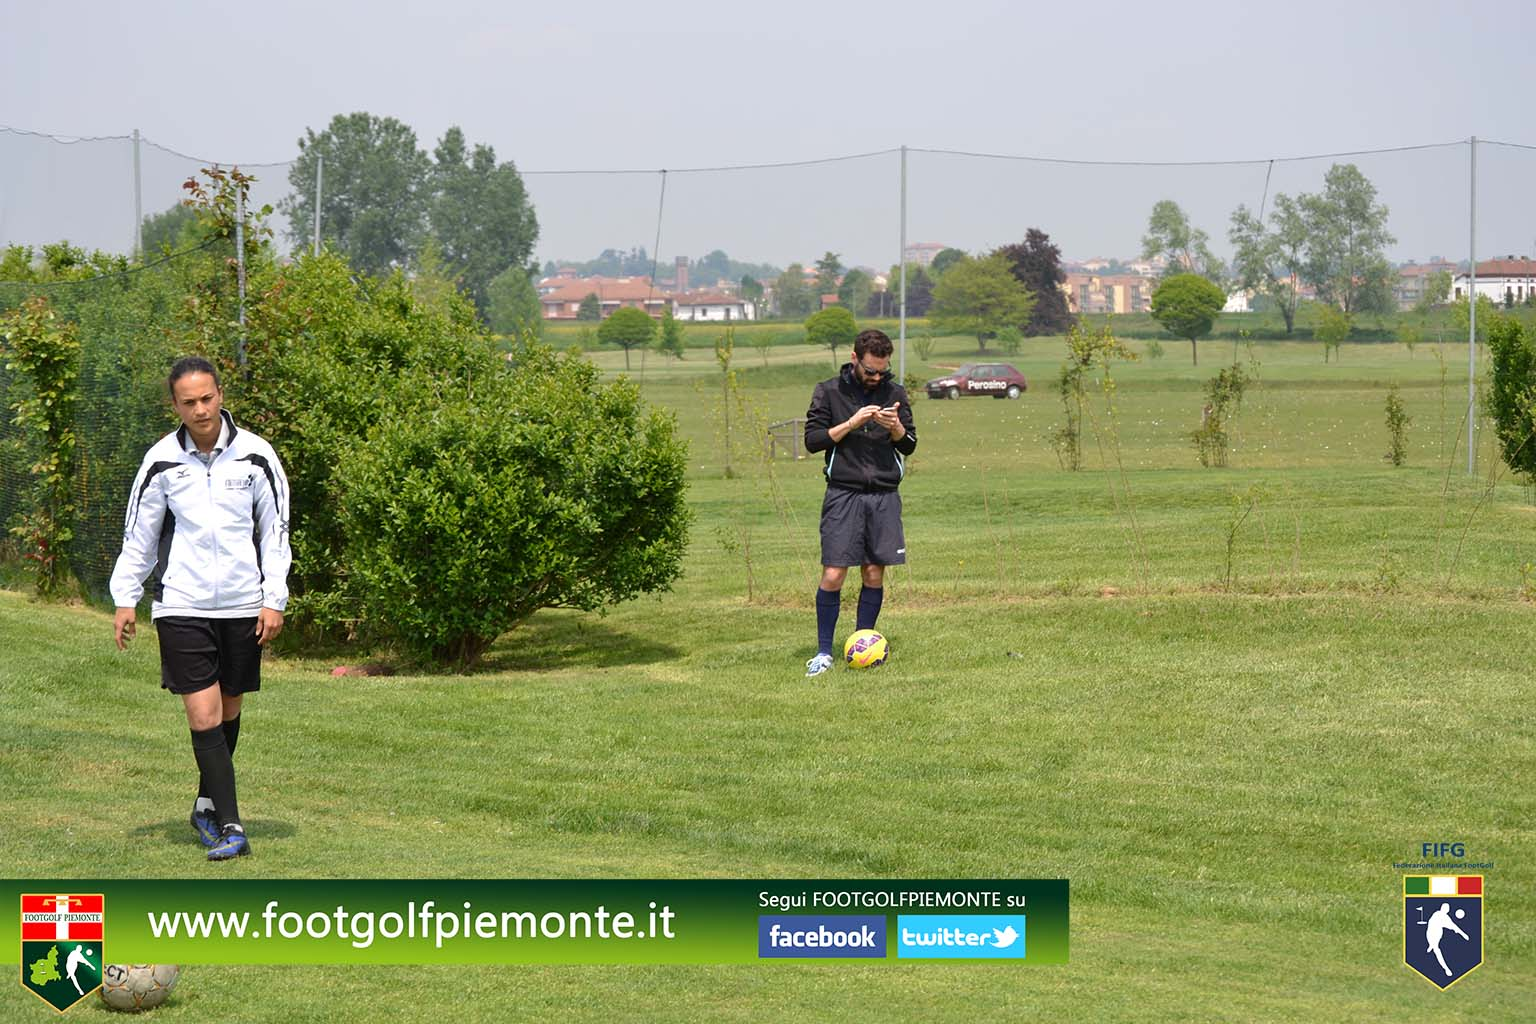 FOTO 9 Regions' Cup Footgolf Piemonte 2016 Golf Città di Asti (At) 30apr16-42